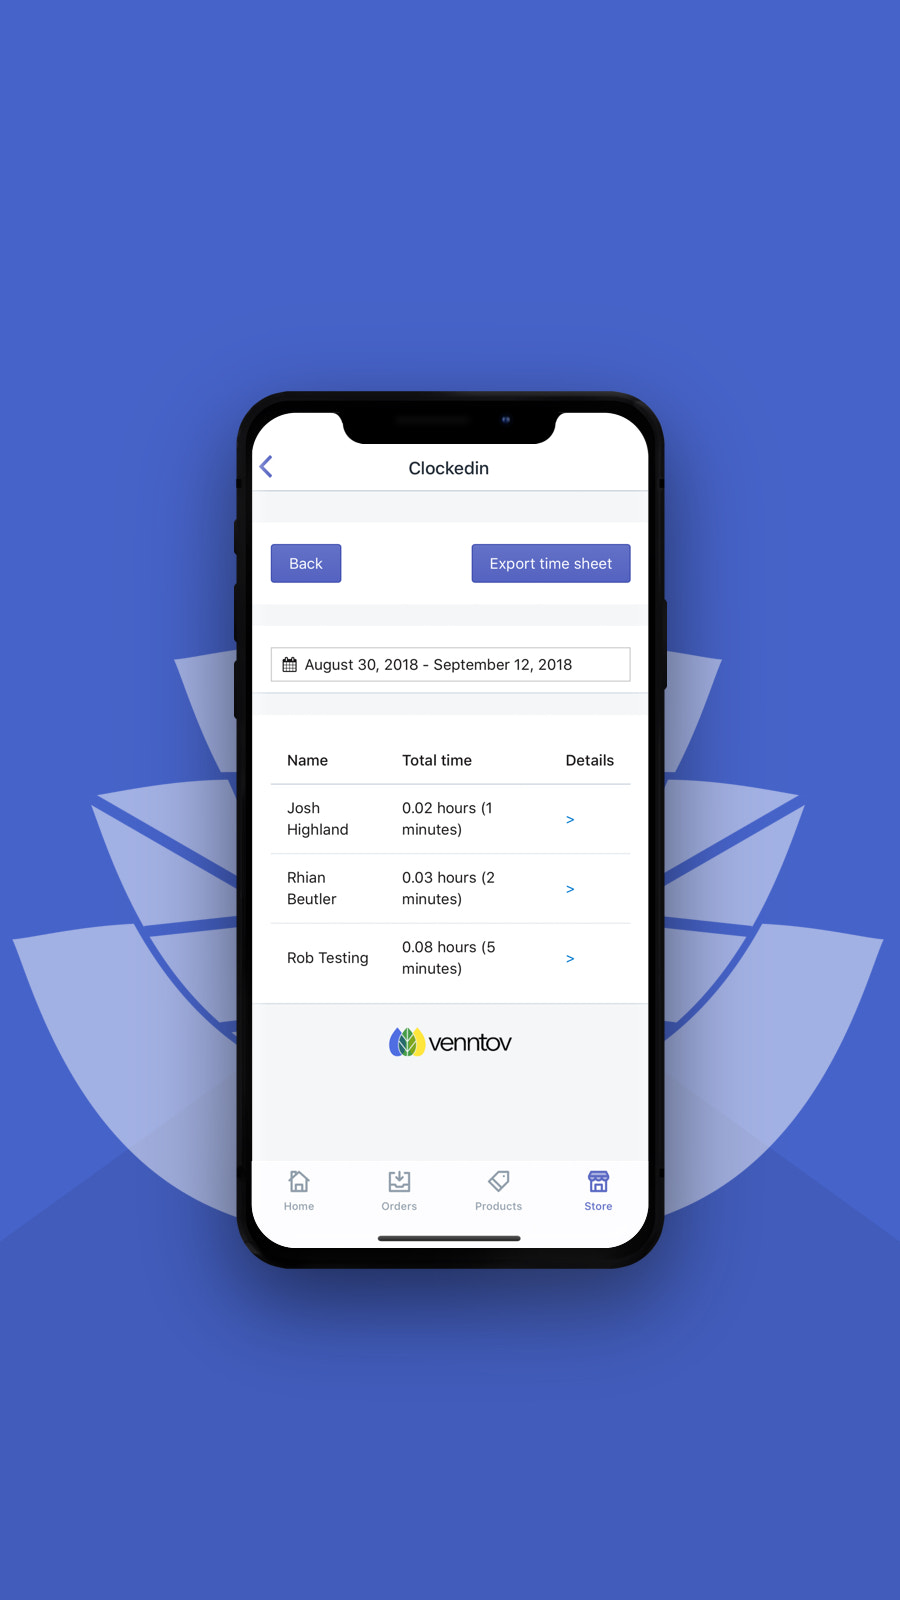 View and manage your team member's hours worked from mobile